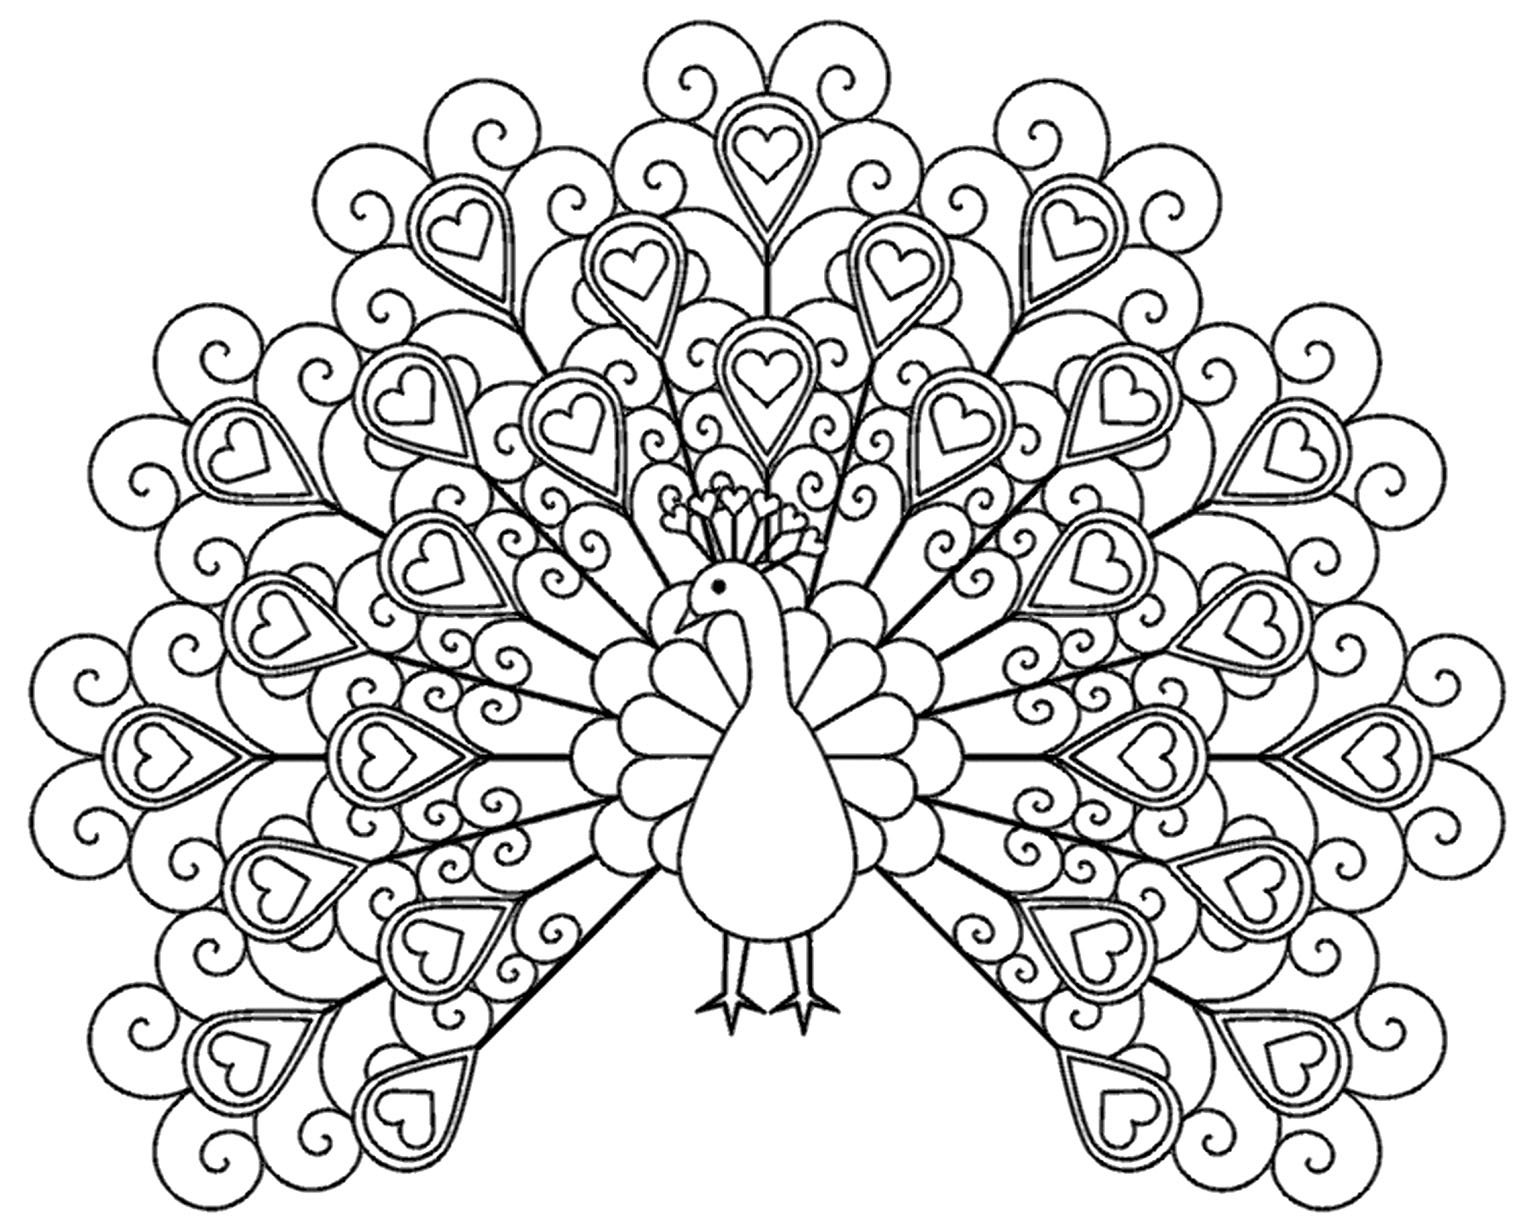 peacock coloring a simple drawing of male peacock coloring page kids play coloring peacock